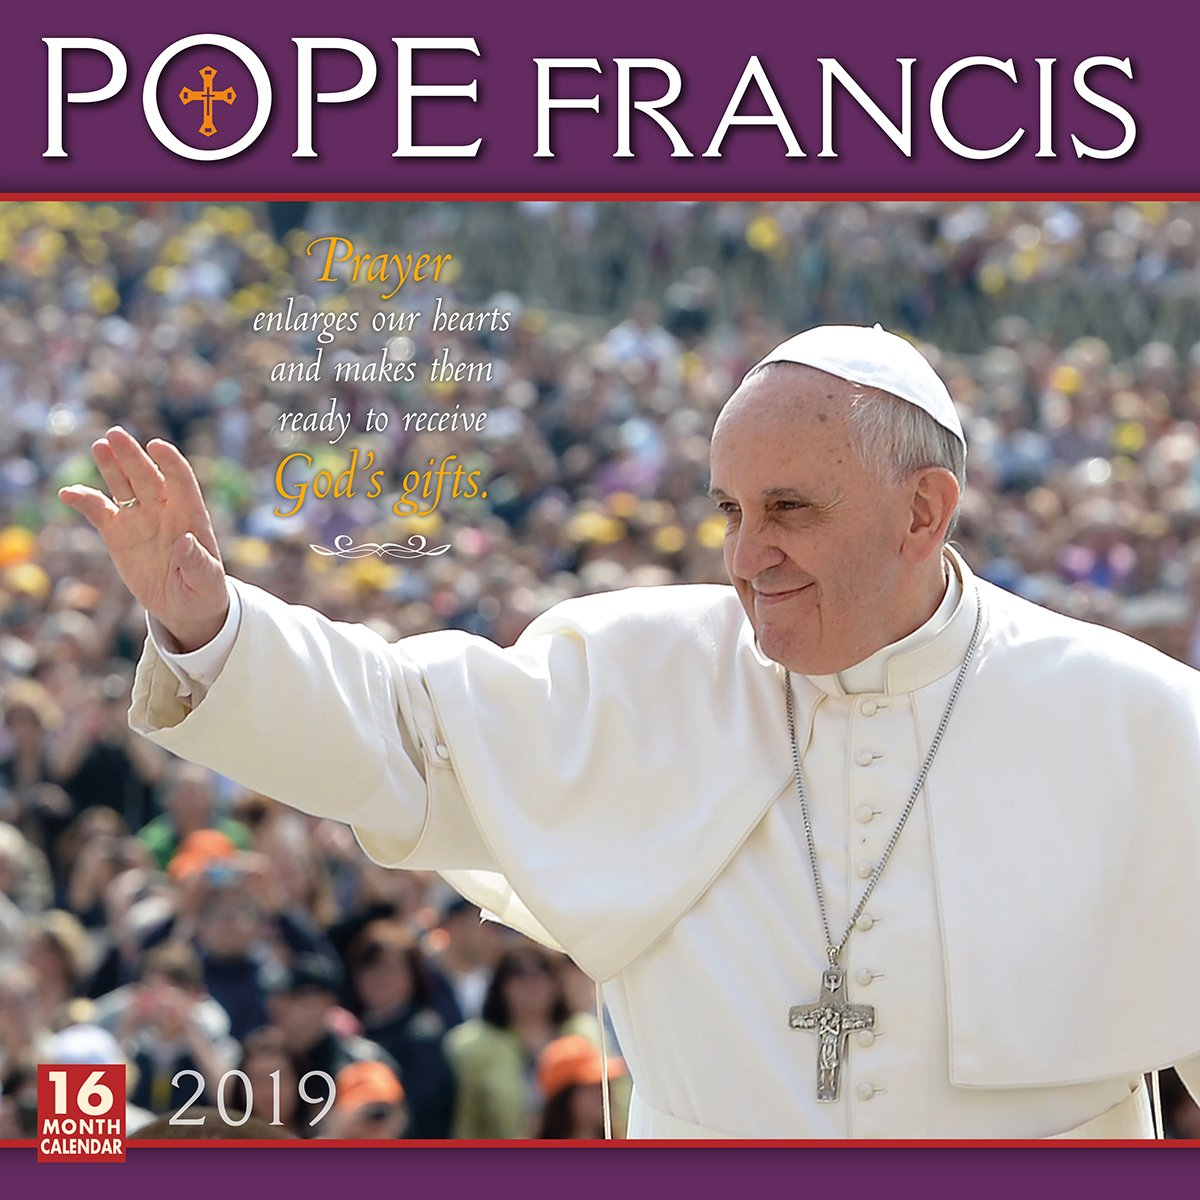 2019 Pope Francis 16-Month Wall Calendar: by Sellers Publishing, 12x12 (CA-0401) Calendar – Wall Calendar, Aug 15 2018 Getty Images Inc. 1531904017 /